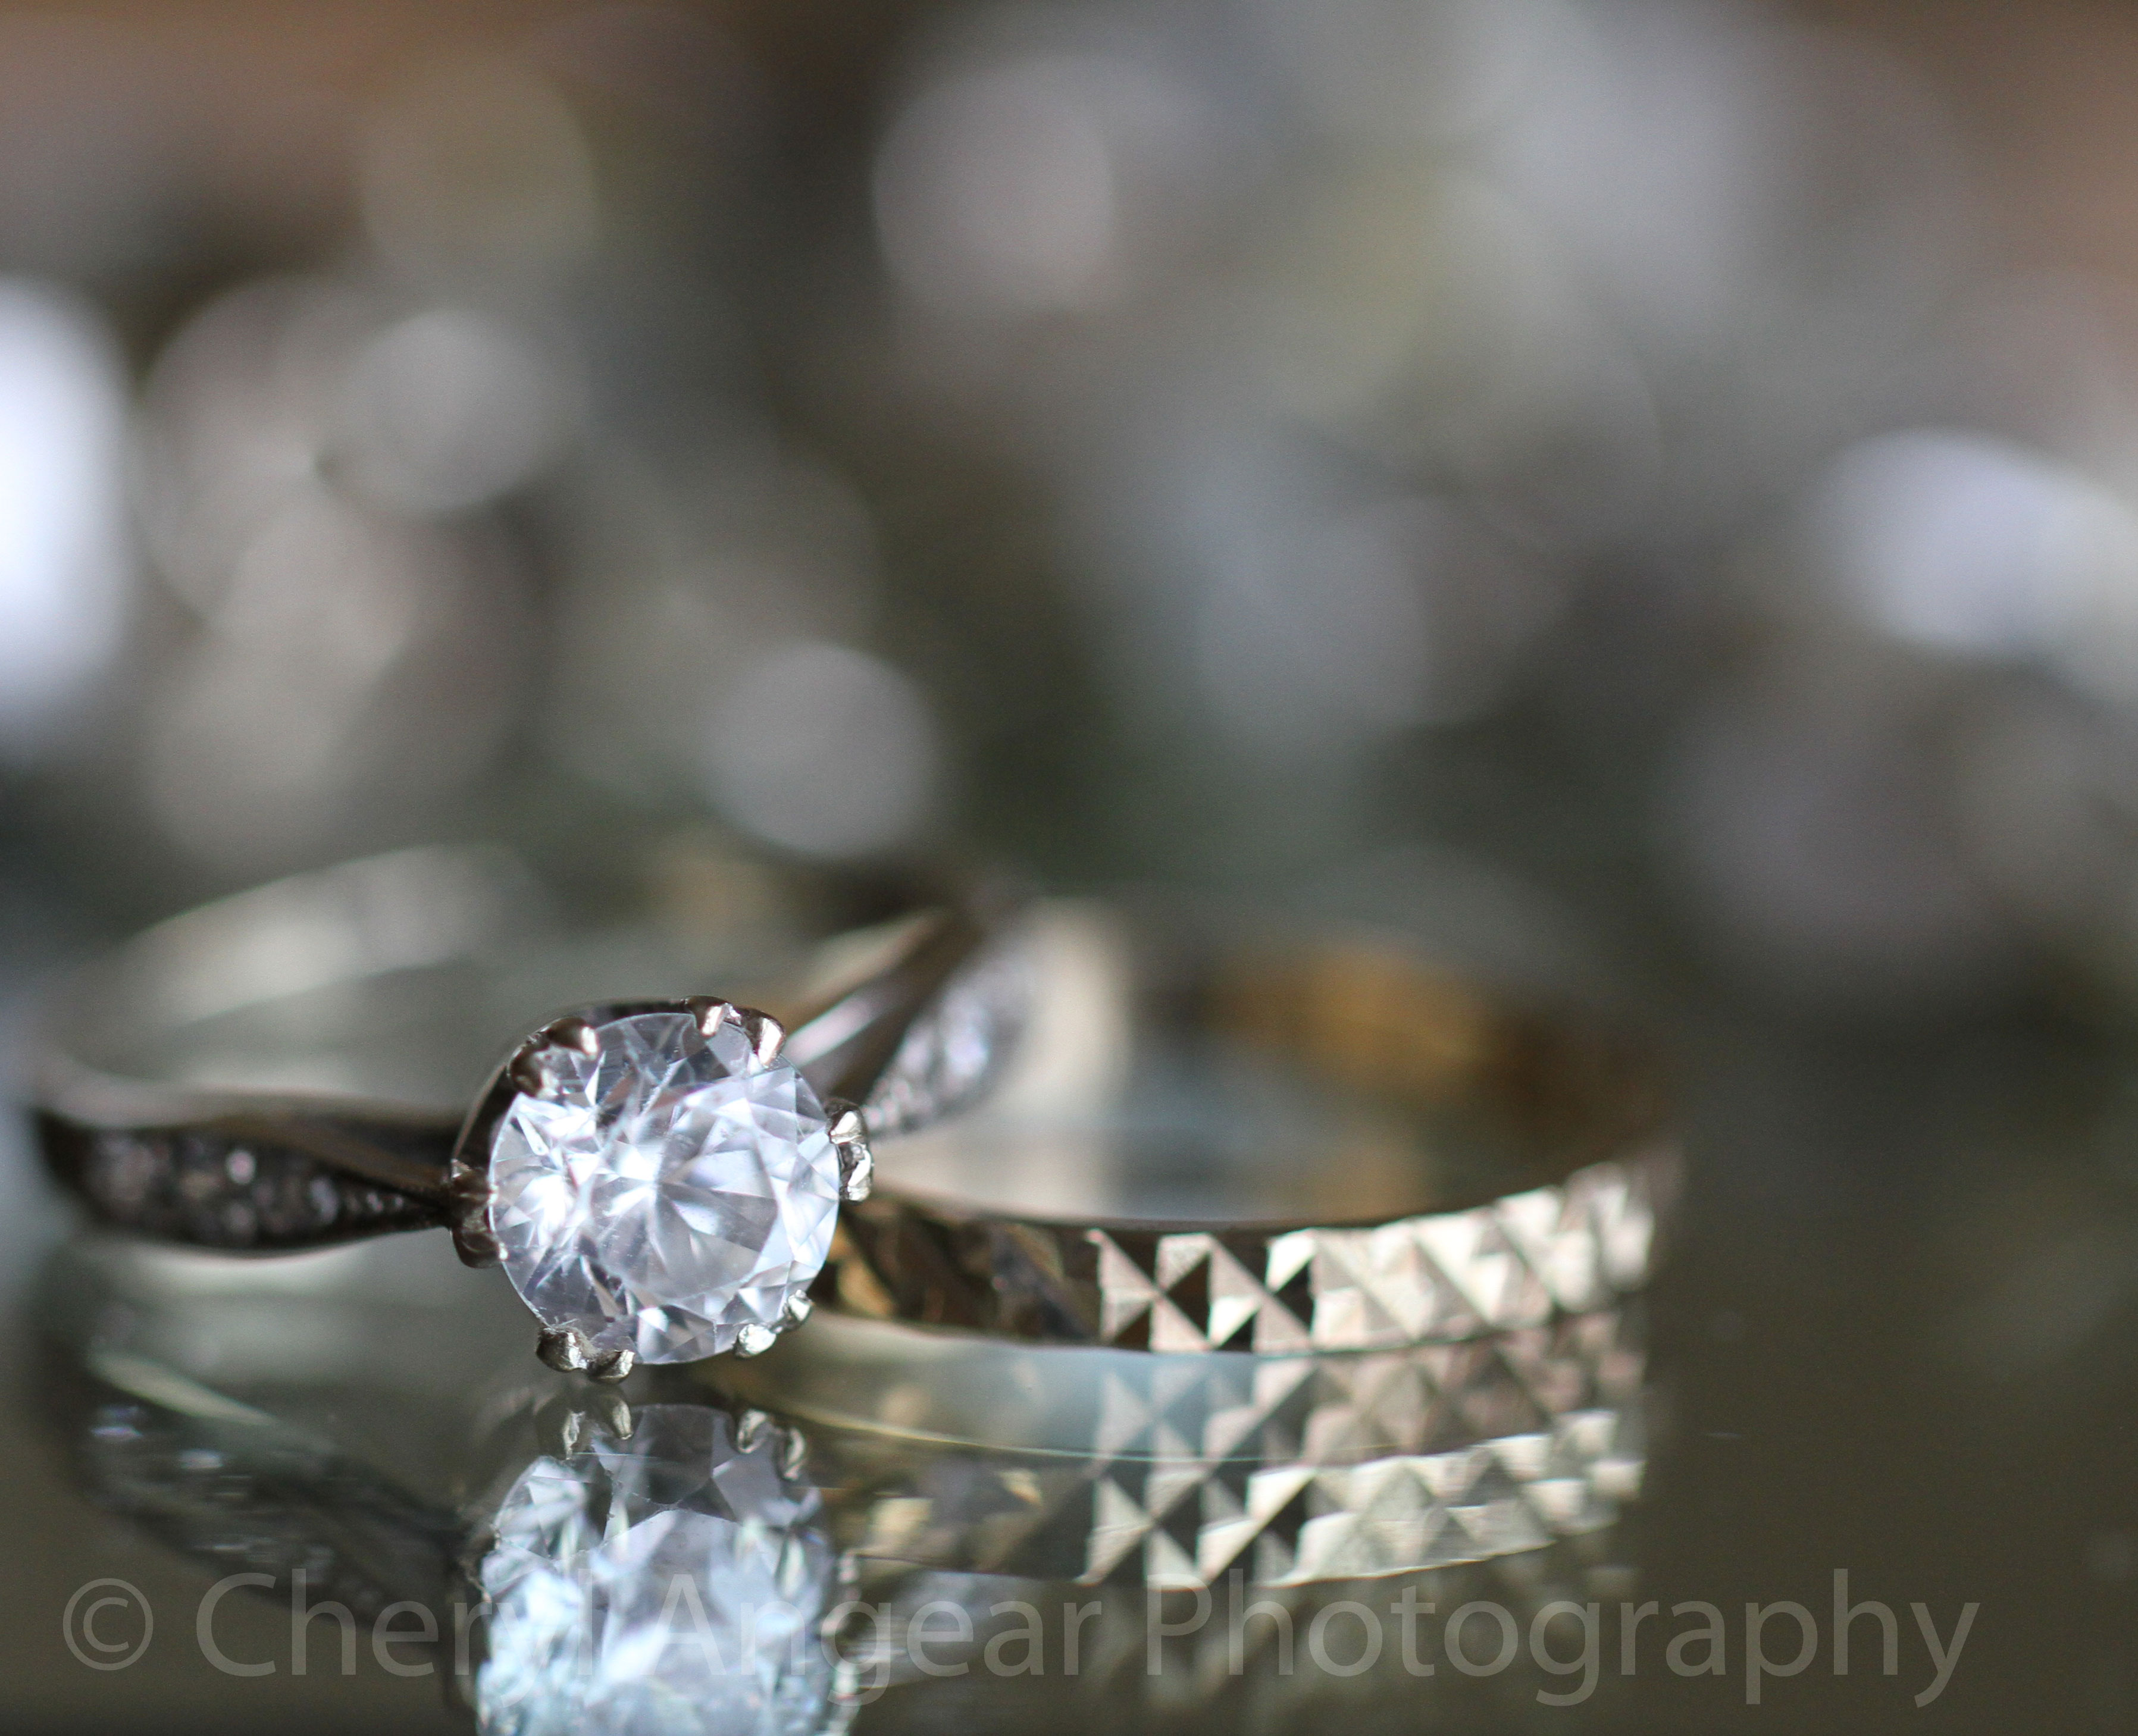 Win Wedding Bands 11 Nice I want you to